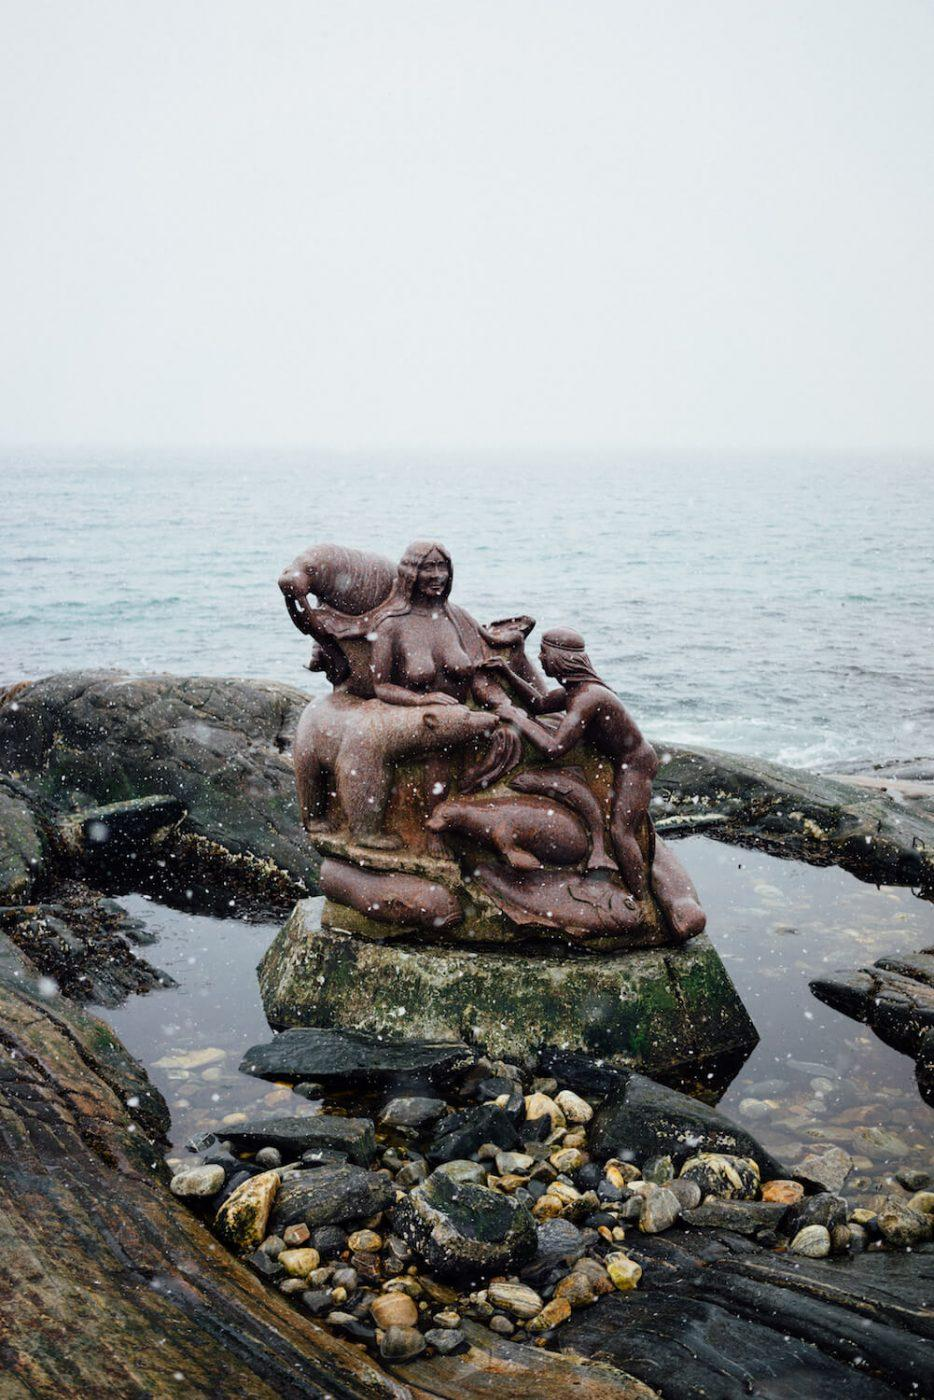 The statue of The Mother of the Sea. Photo By Jessie Brinks Evans